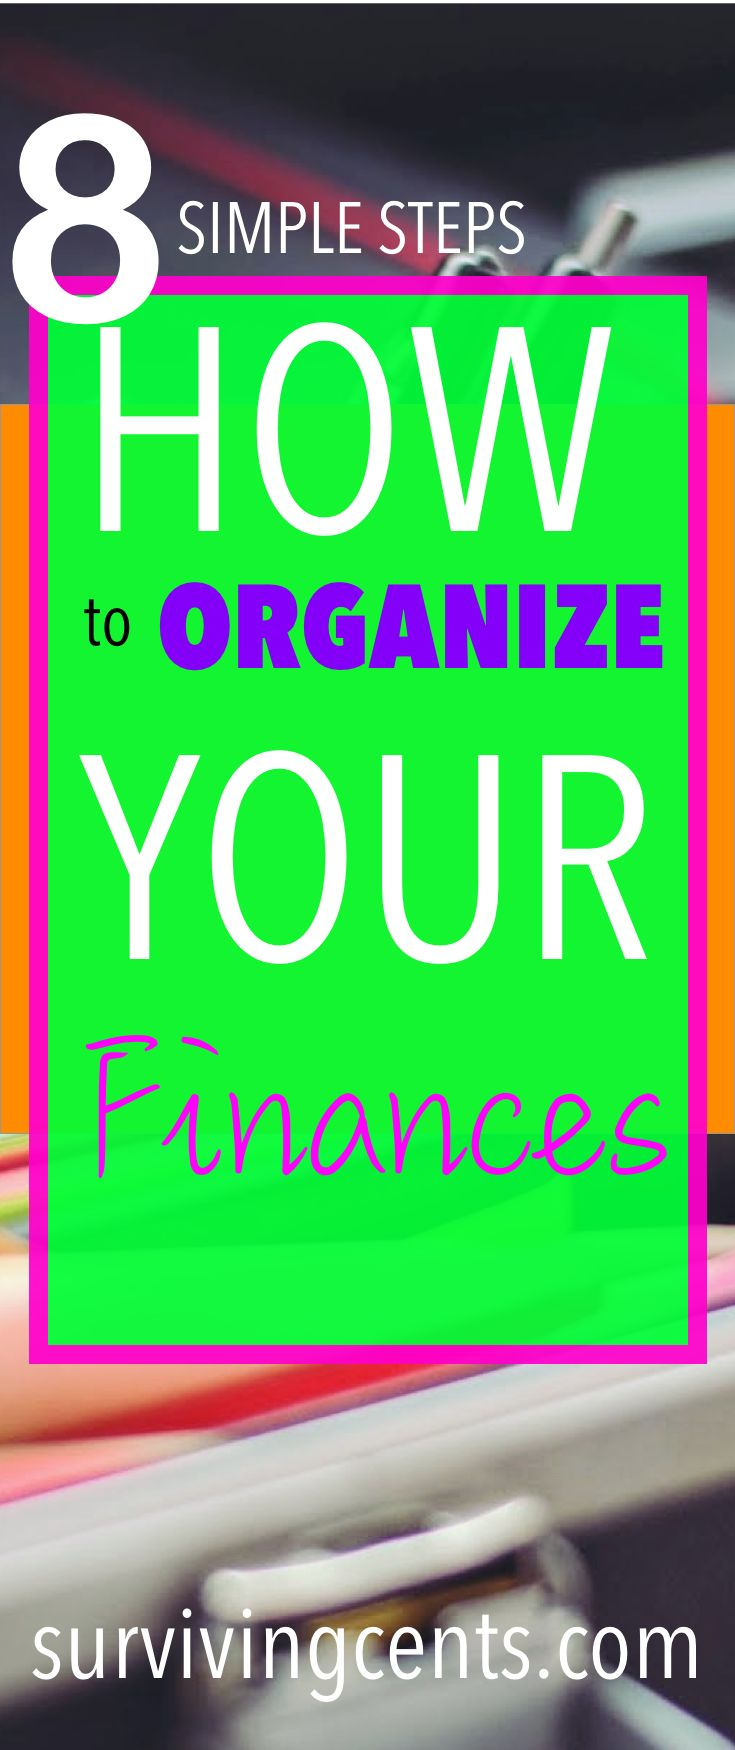 |How to organize your finances|Organizing your finances is important to have financial success. Here is how you can organize your finances to get you and your family off to a good start.